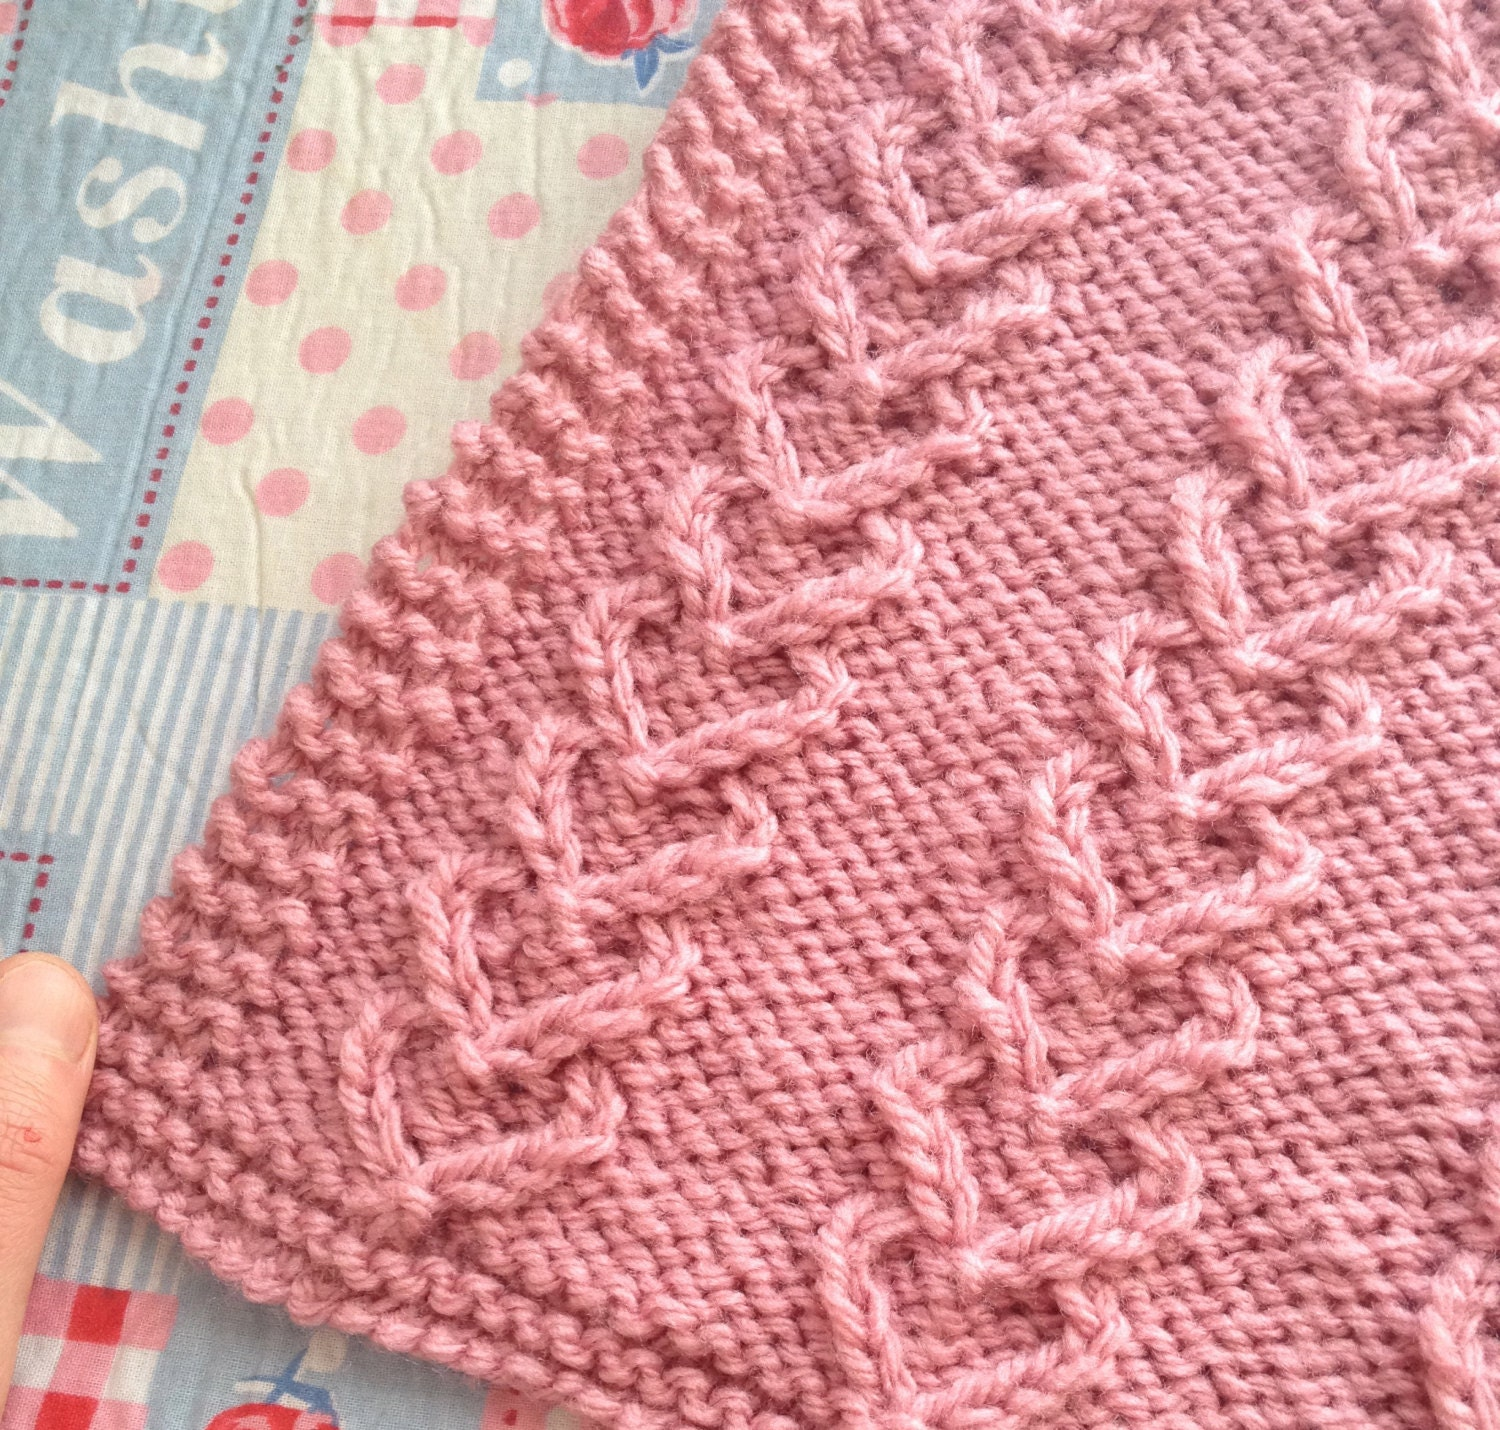 Heart Baby Blanket, Knitting Pattern, Cable, Pram, Instant Download ...